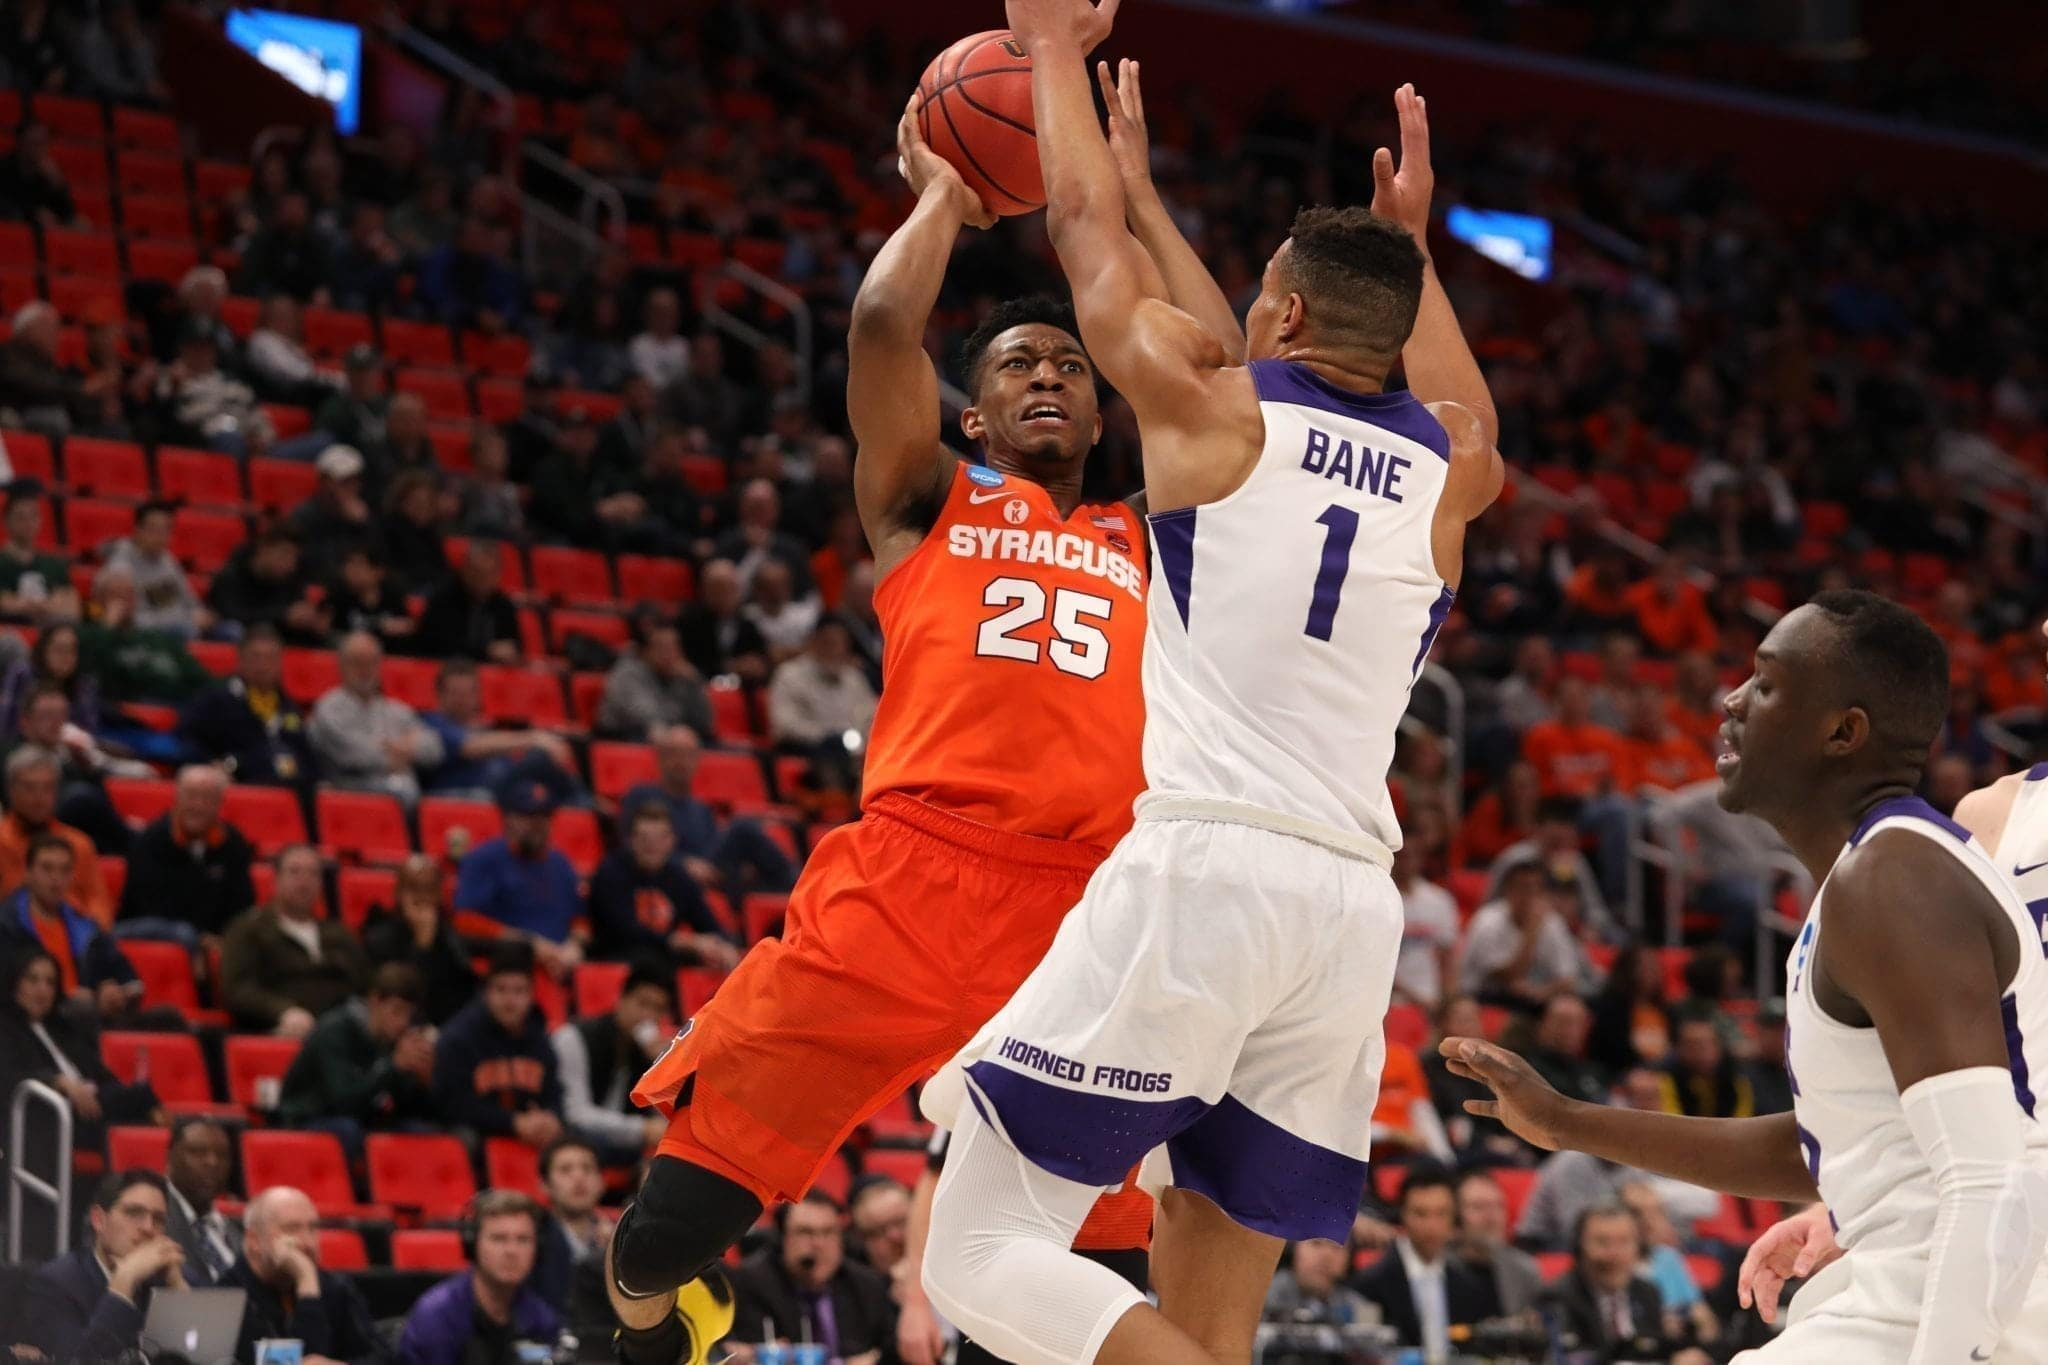 Guard Tyus Battle goes up for a shot over Texas Christian's Bane in SU's opening round NCAA tournament win.